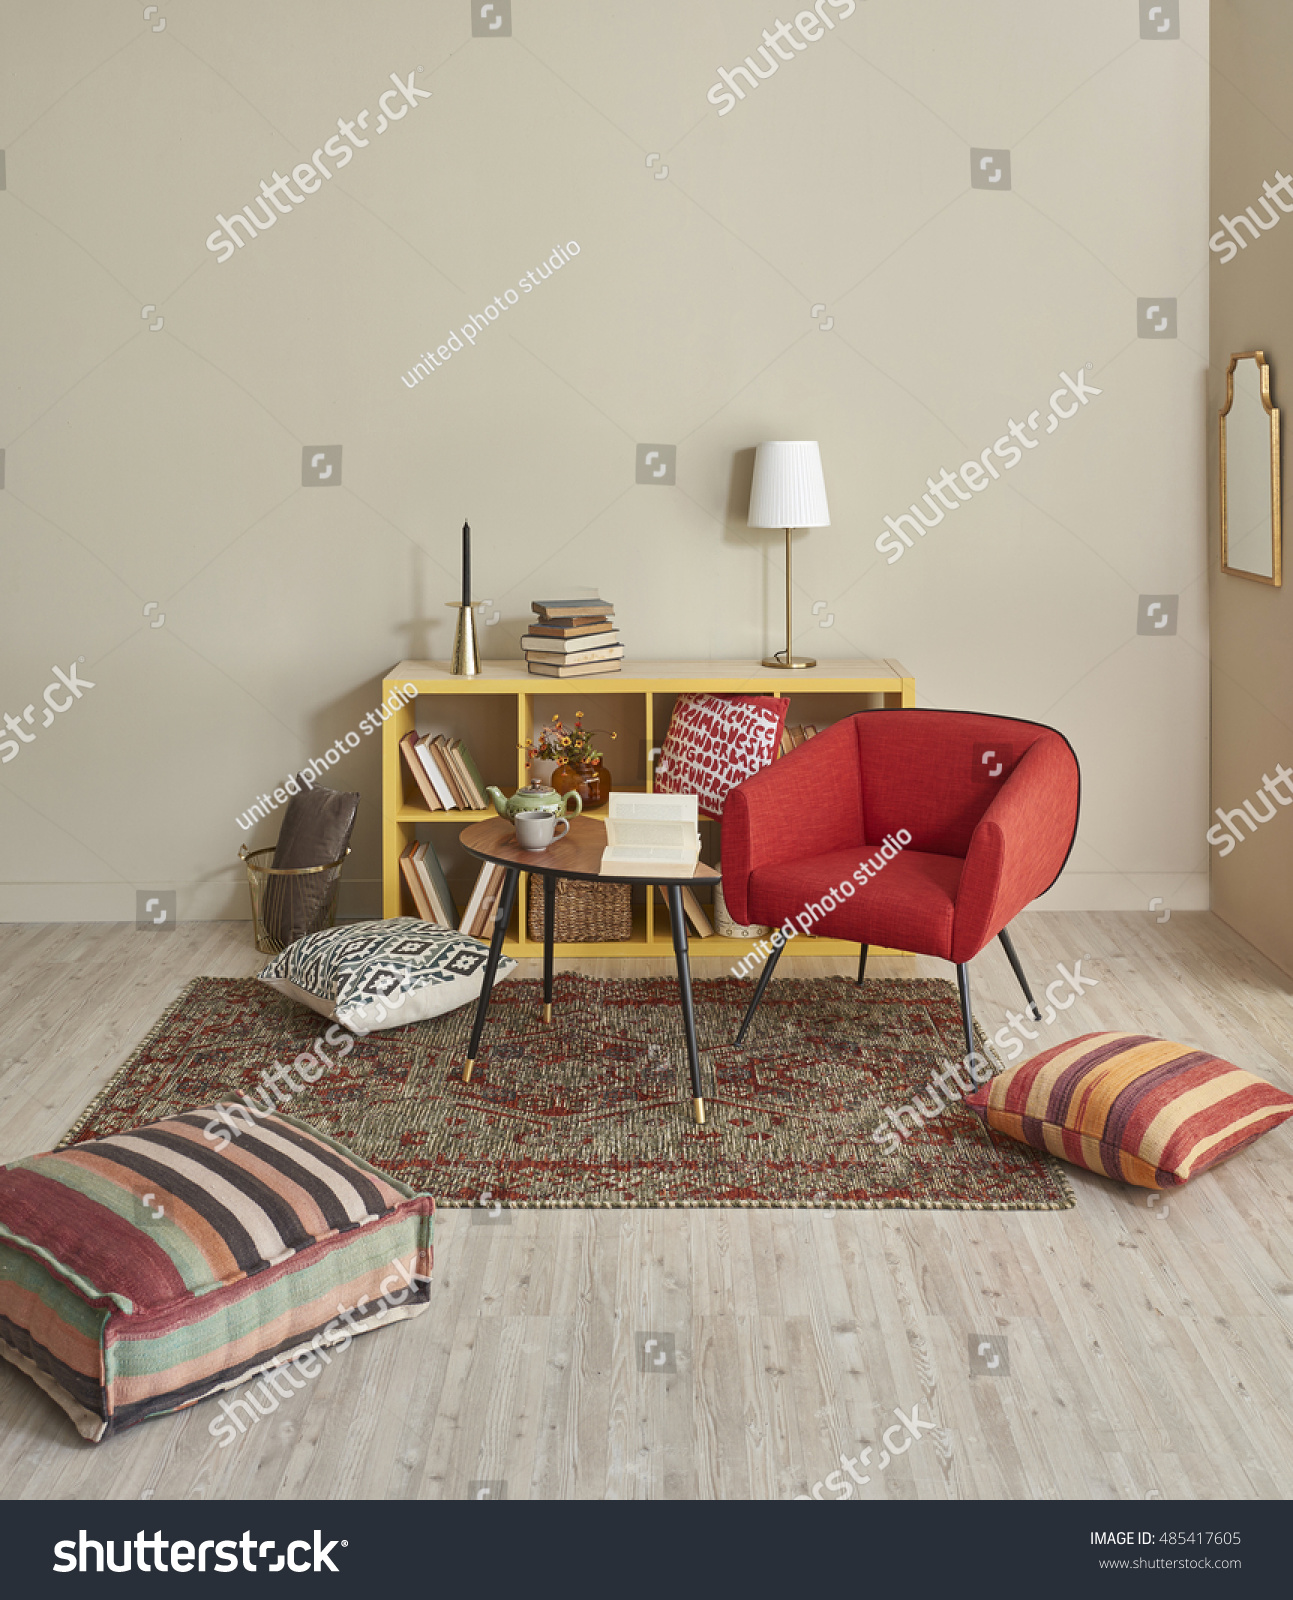 Modern interior room nice furniture inside stock photo for Nice furniture